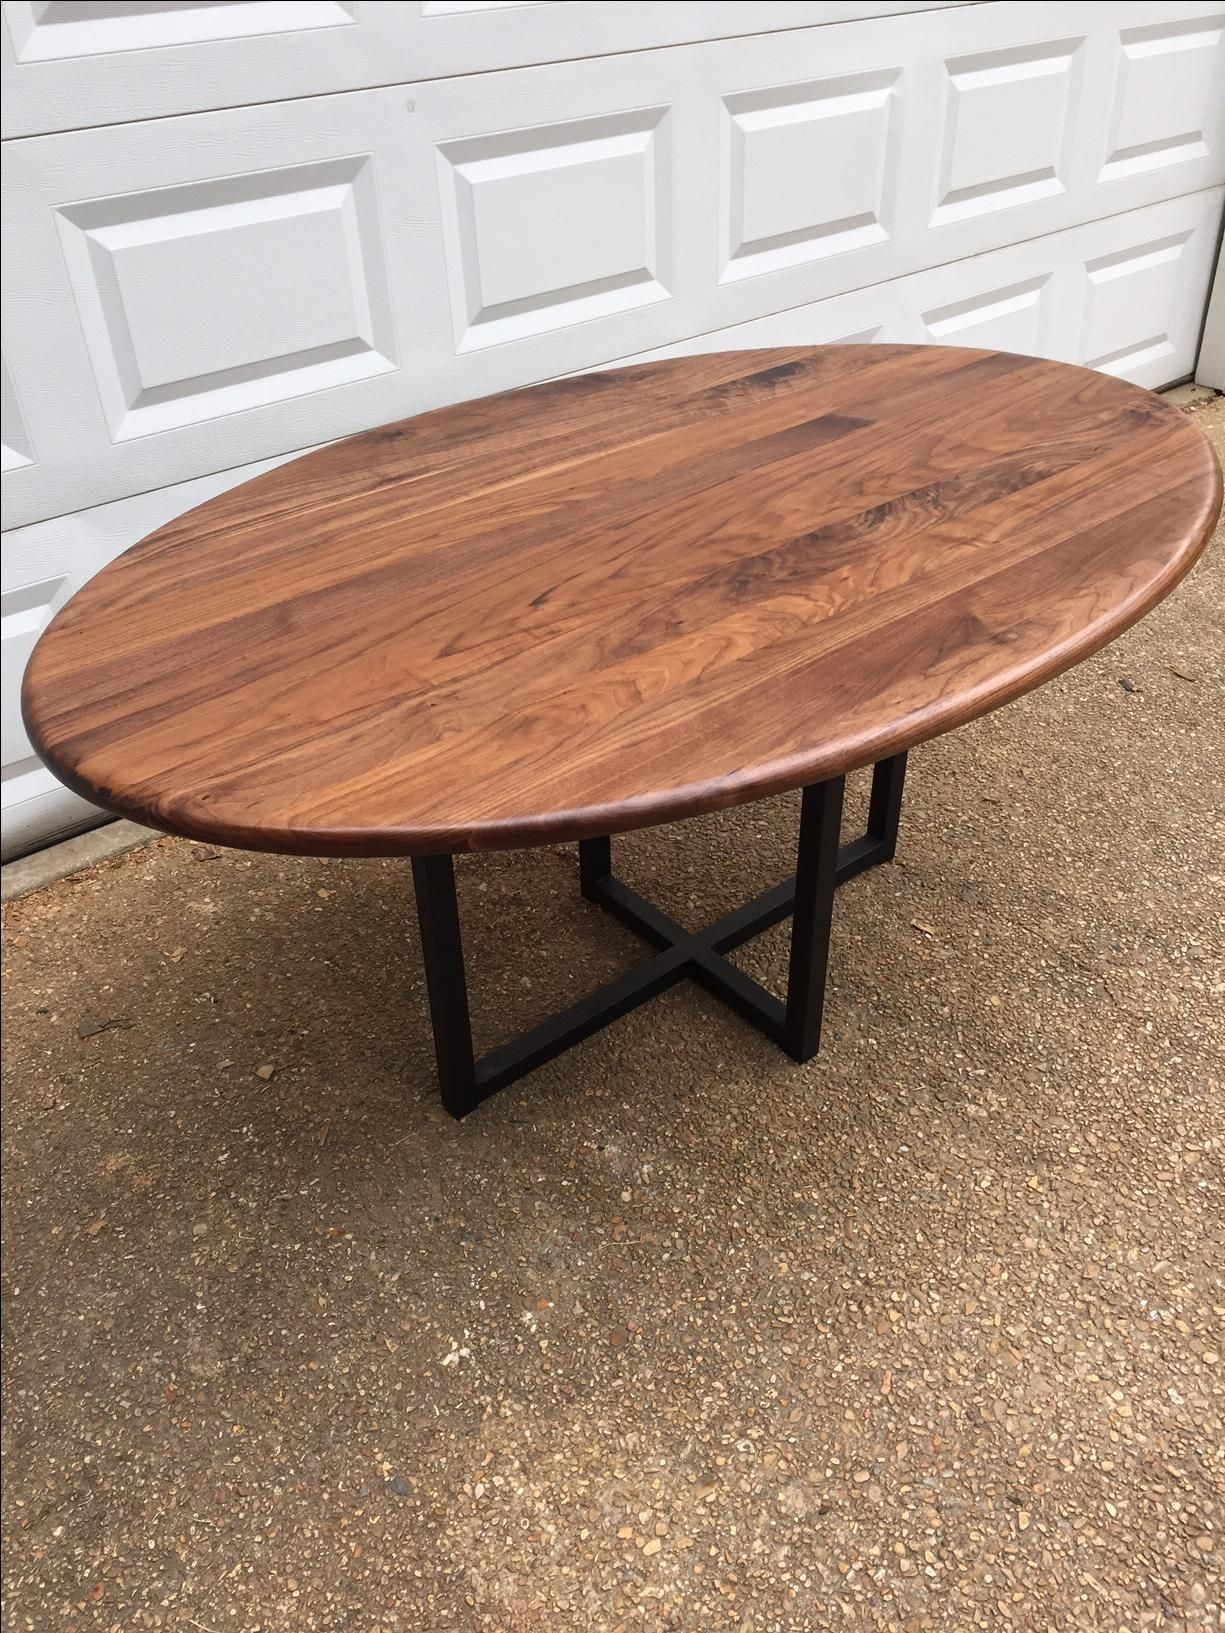 Buy a Custom Mid Century Dining Table - Oval Table -Metal ...